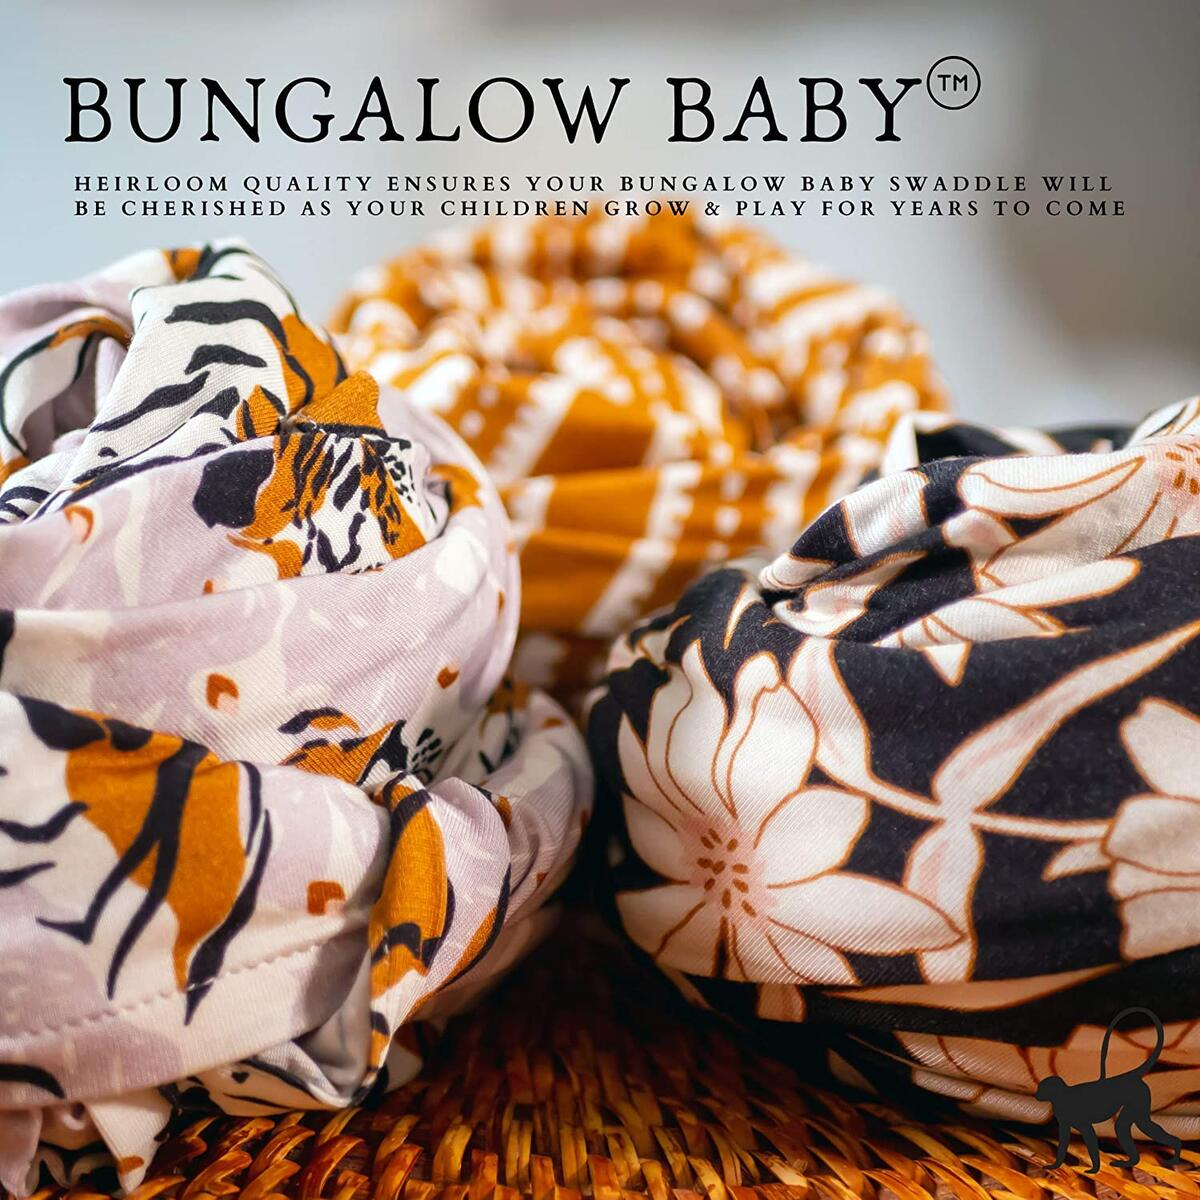 Bungalow Baby Swaddle Set - Premium Bamboo Viscose Baby Swaddle Blanket & Hat Set, Baby Boy, Baby Girl, Unisex, Newborn Swaddle, Baby Wrap, Bamboo Blanket, (Tiger Palm)